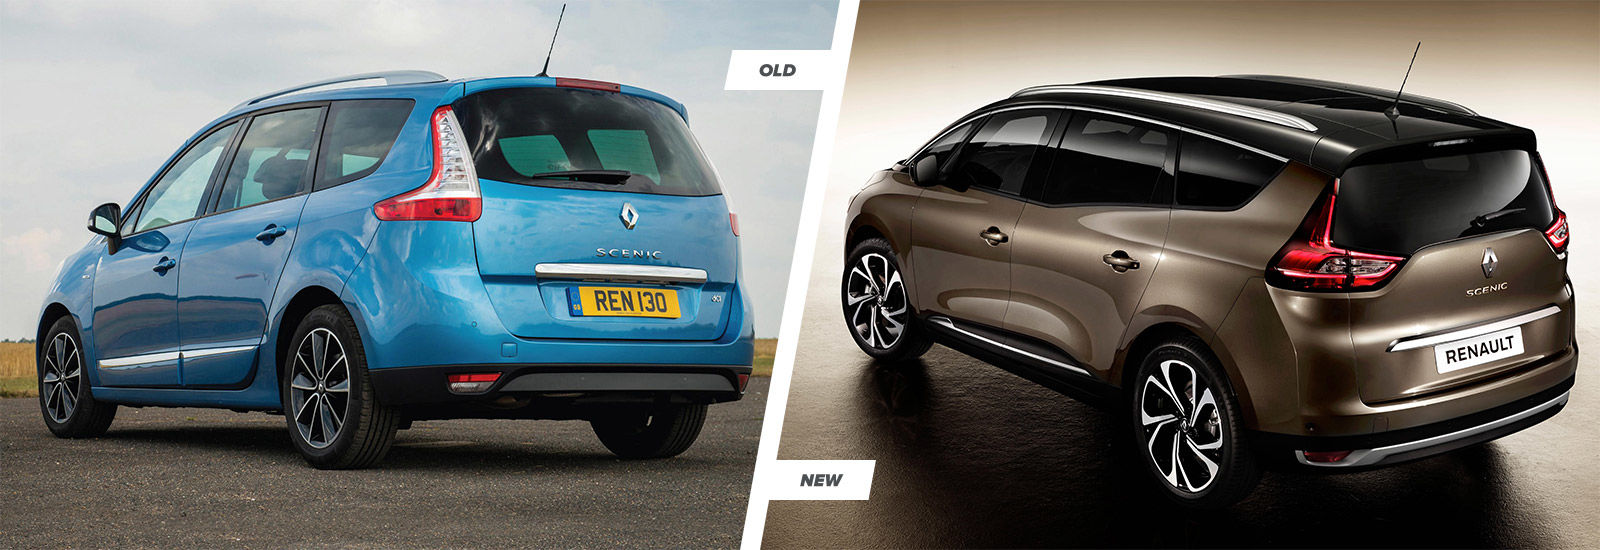 2016 renault scenic and grand scenic old vs new carwow. Black Bedroom Furniture Sets. Home Design Ideas